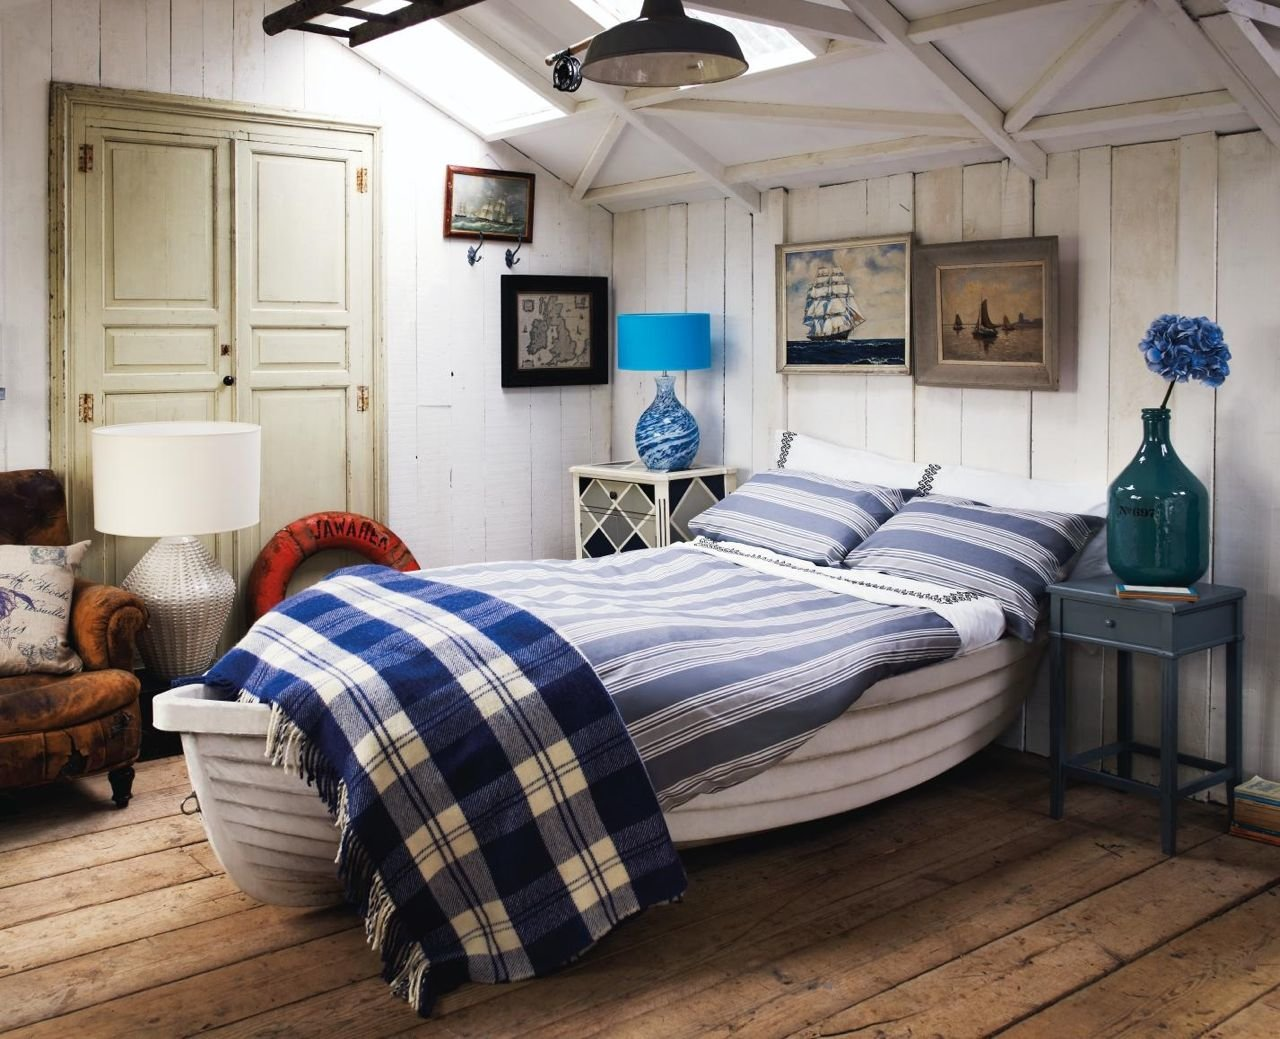 Best Fun Nautical Decorating Items Nautical Handcrafted Decor With Pictures